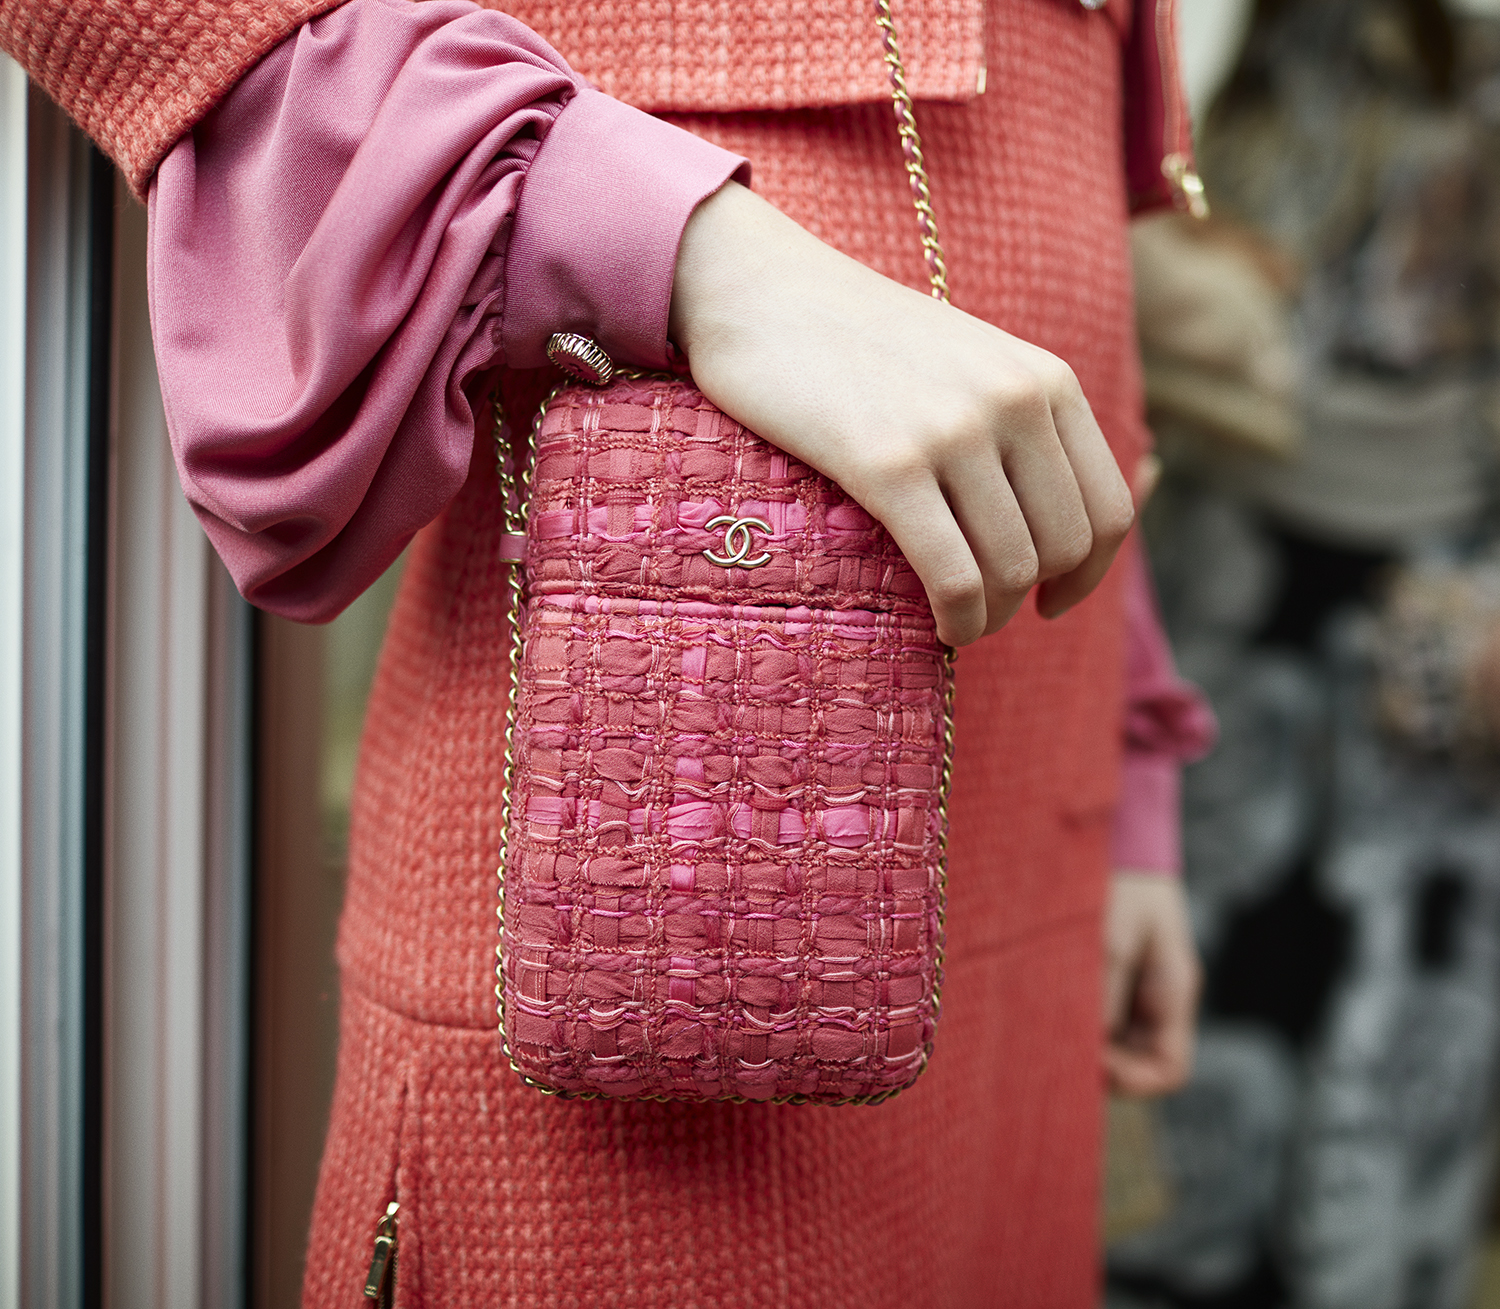 03_backstage-close-up-accessories-by-stcphane-gallois_ld